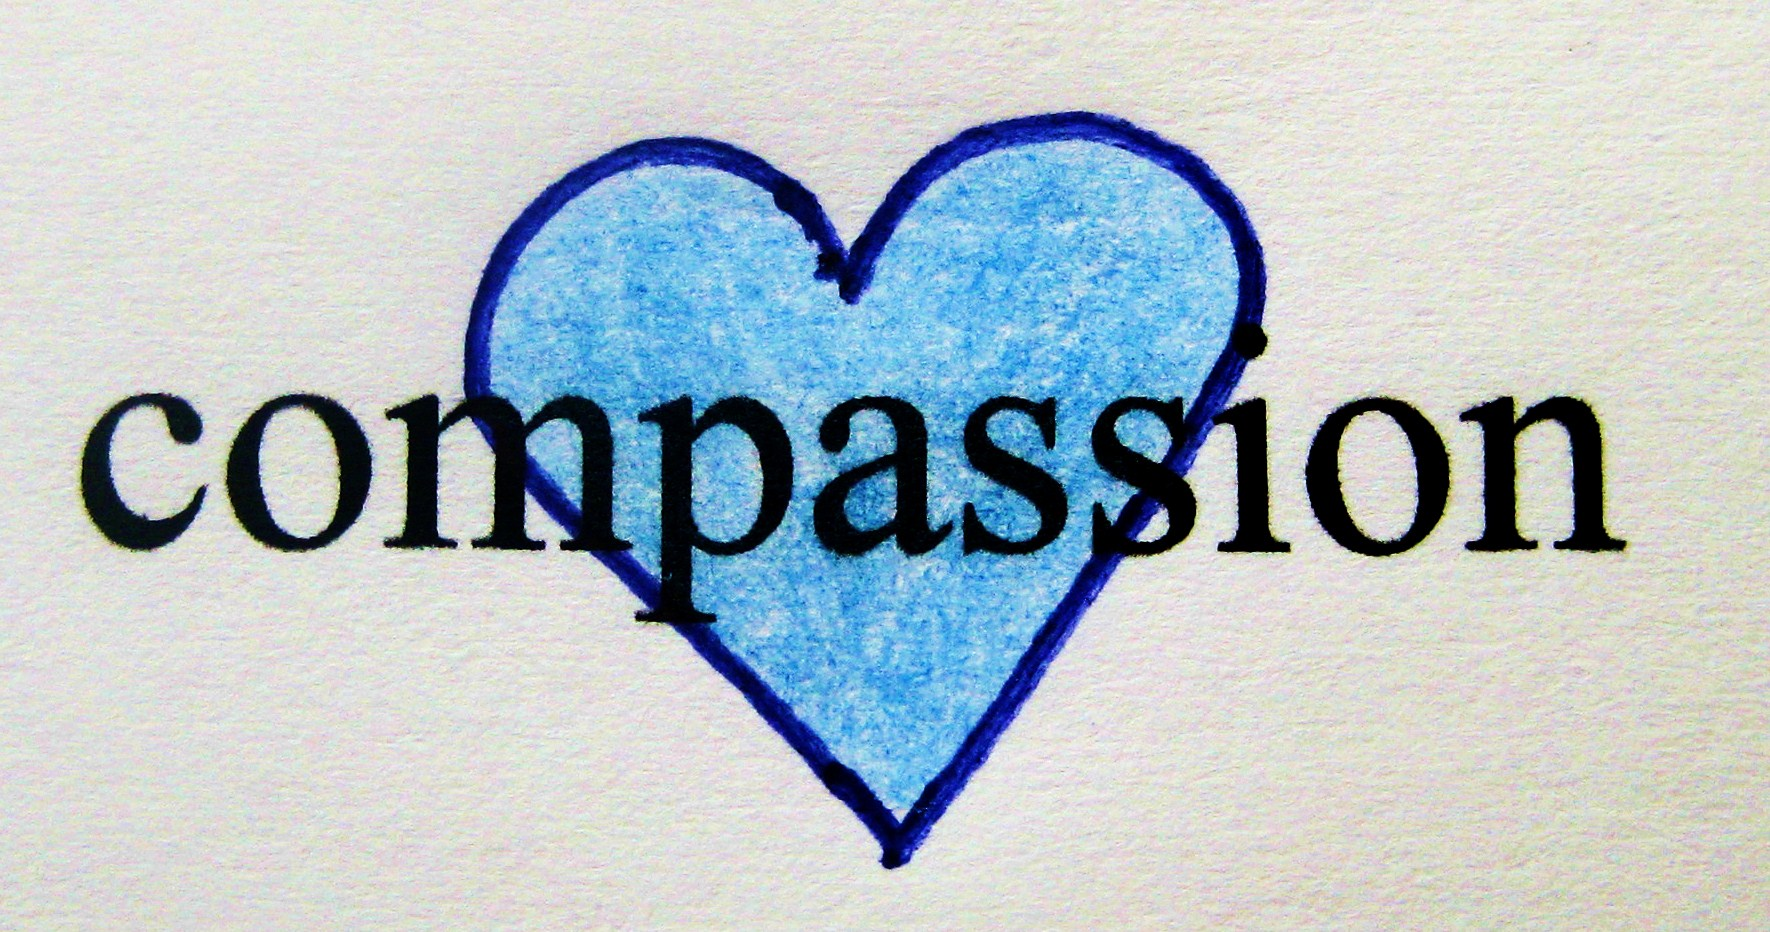 Showing Compassion Clip Art free image.